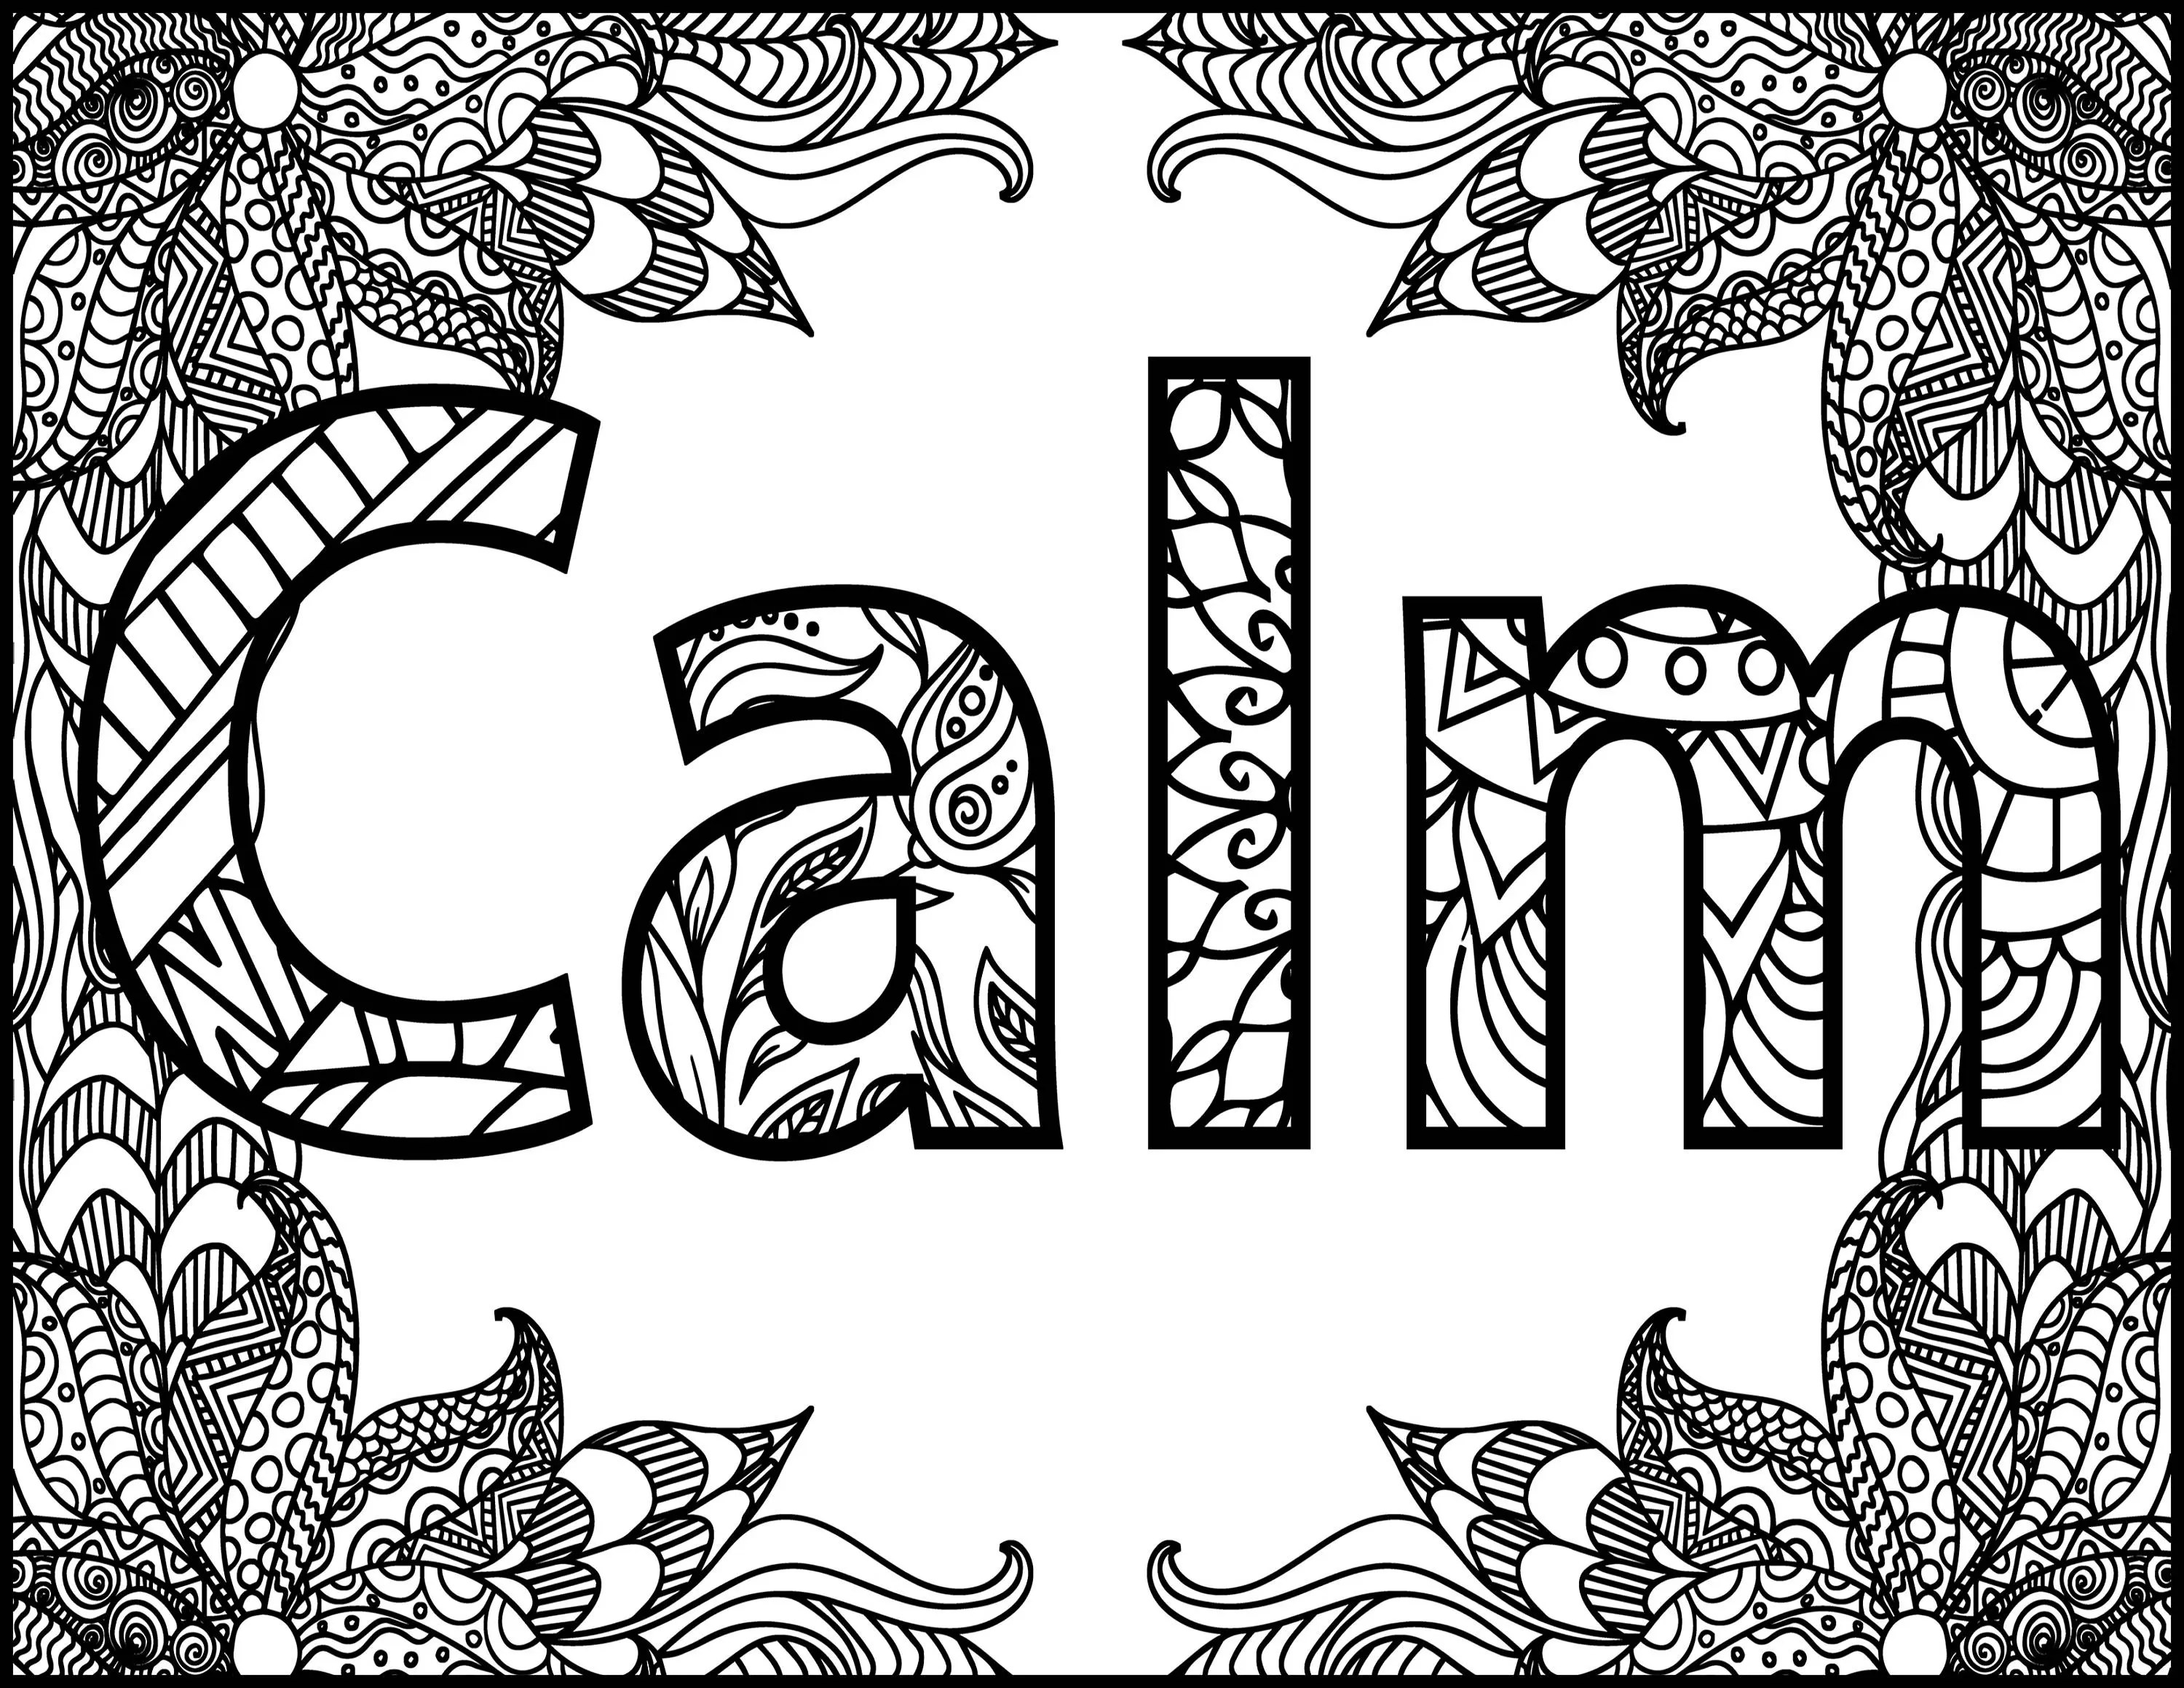 Positive Word Coloring Page Calm Positive Adult Coloring